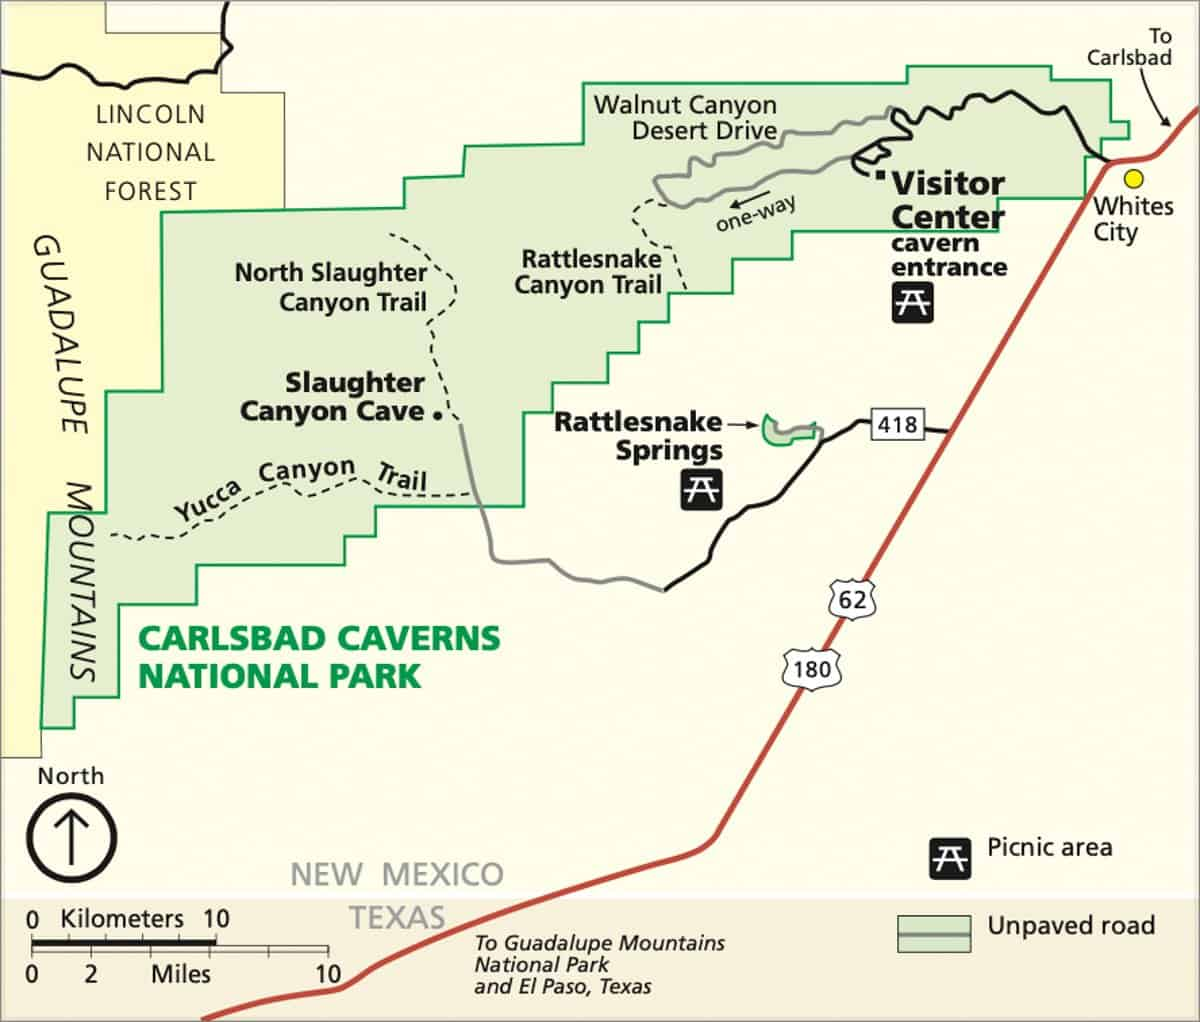 Official NPS map of Carlsbad Caverns National Park